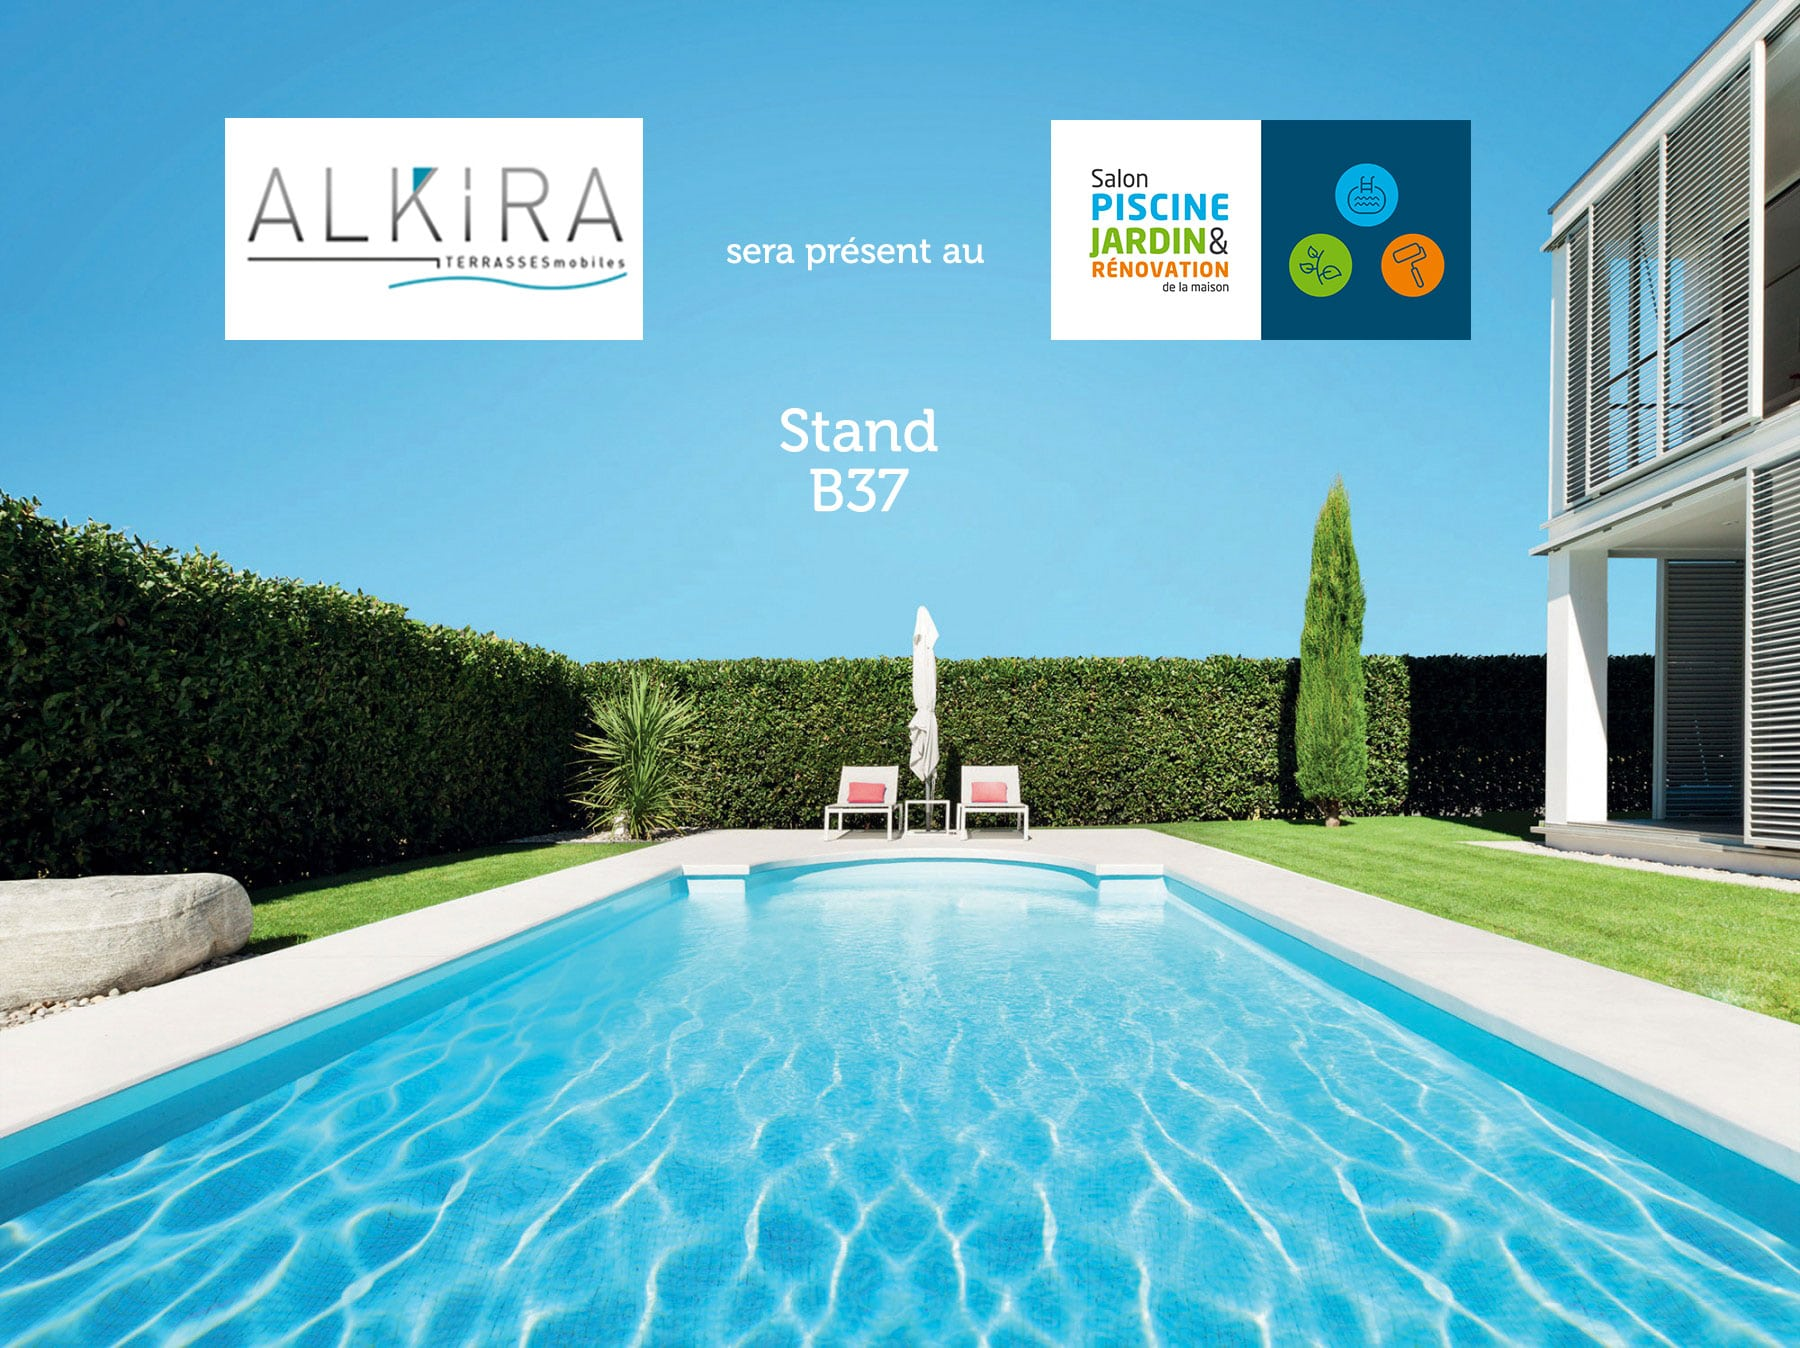 Terrasses amovibles ou coulissantes pour piscine alkira for Salon piscine avignon 2017